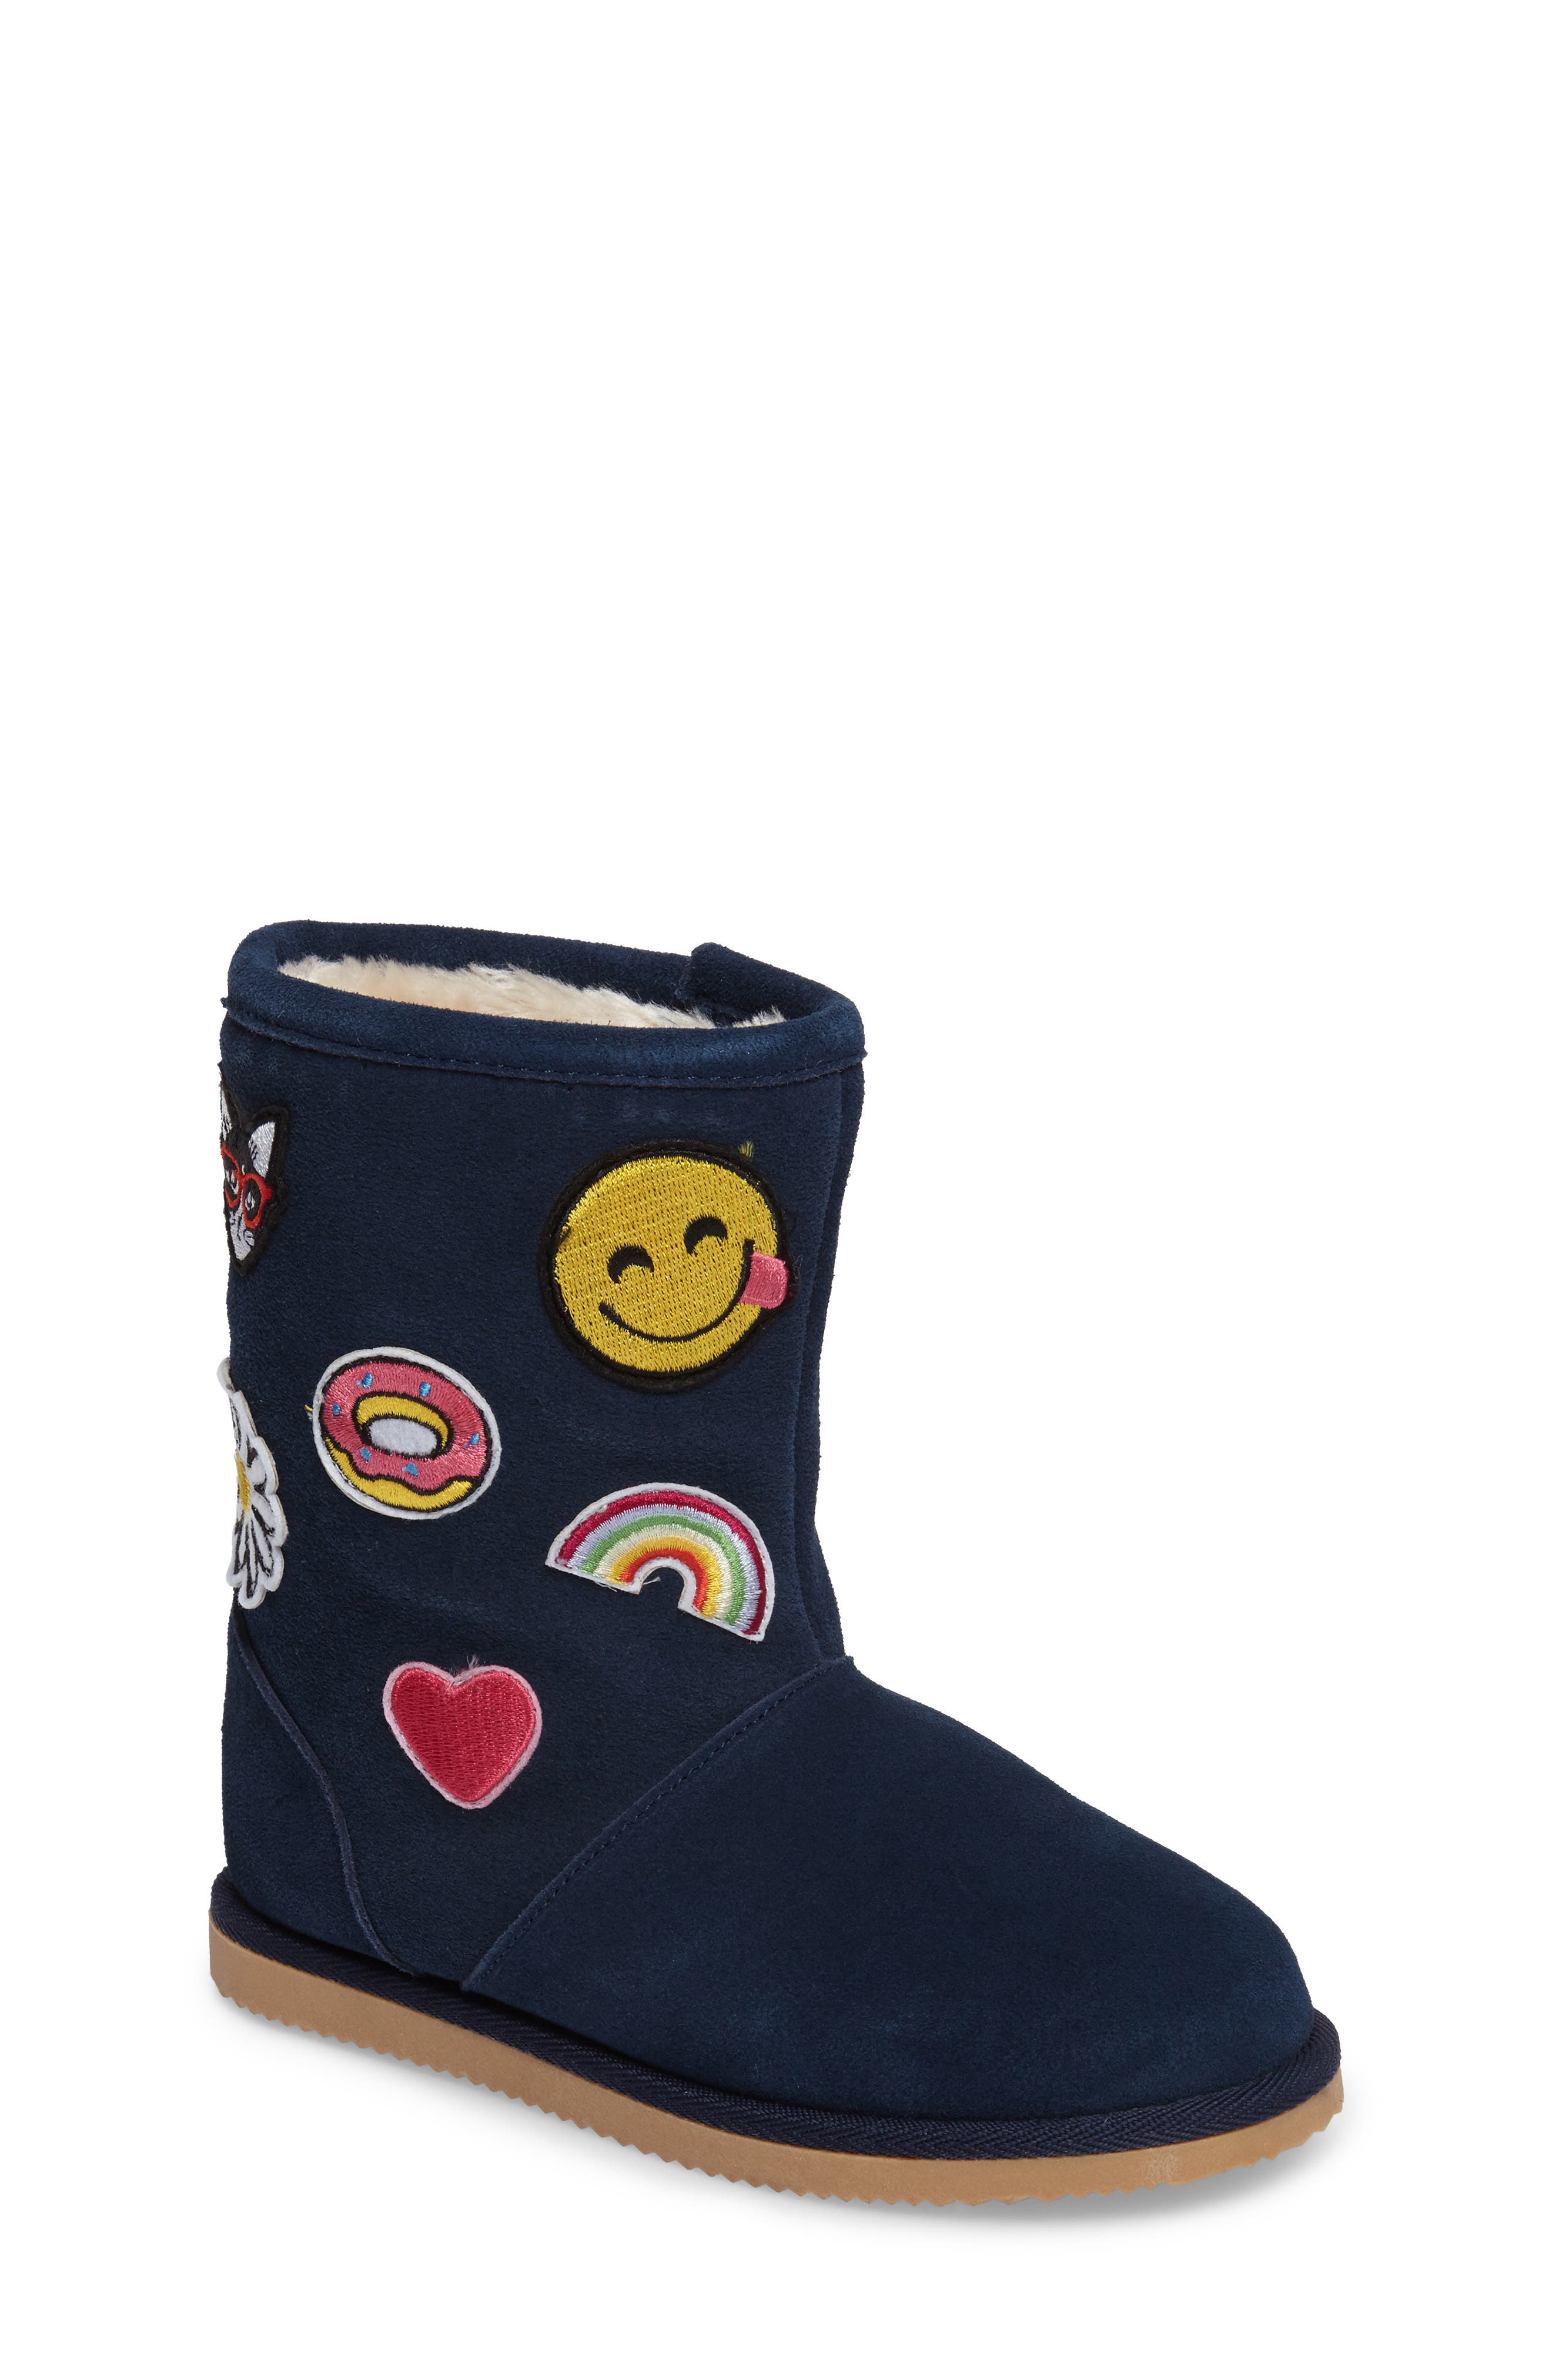 Alternate Image 1 Selected - Tucker + Tate Connie Appliqué Faux Fur Boot (Walker, Toddler, Little Kid & Big Kid)